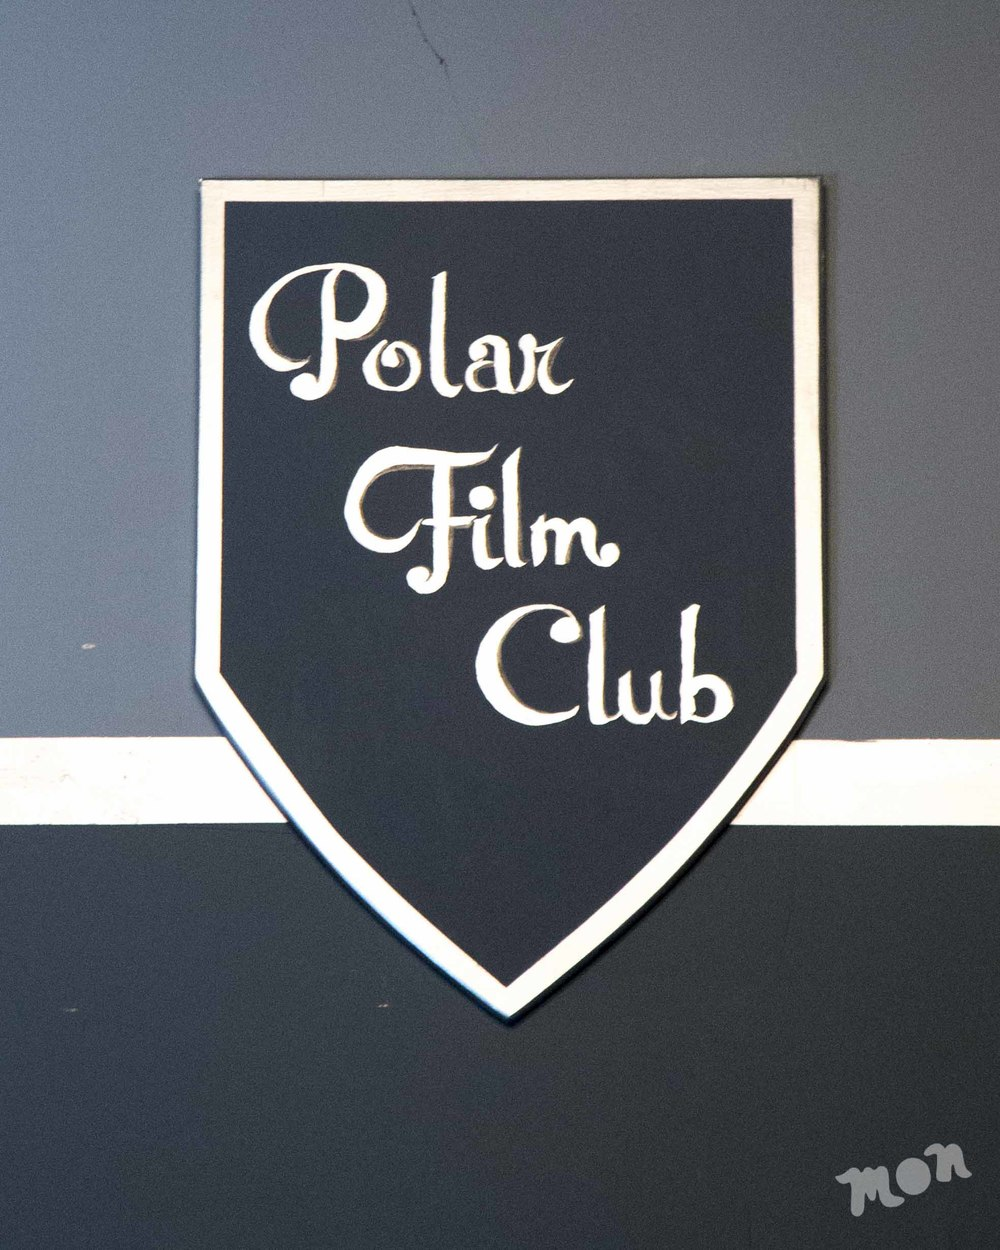 Polar Film Club seal